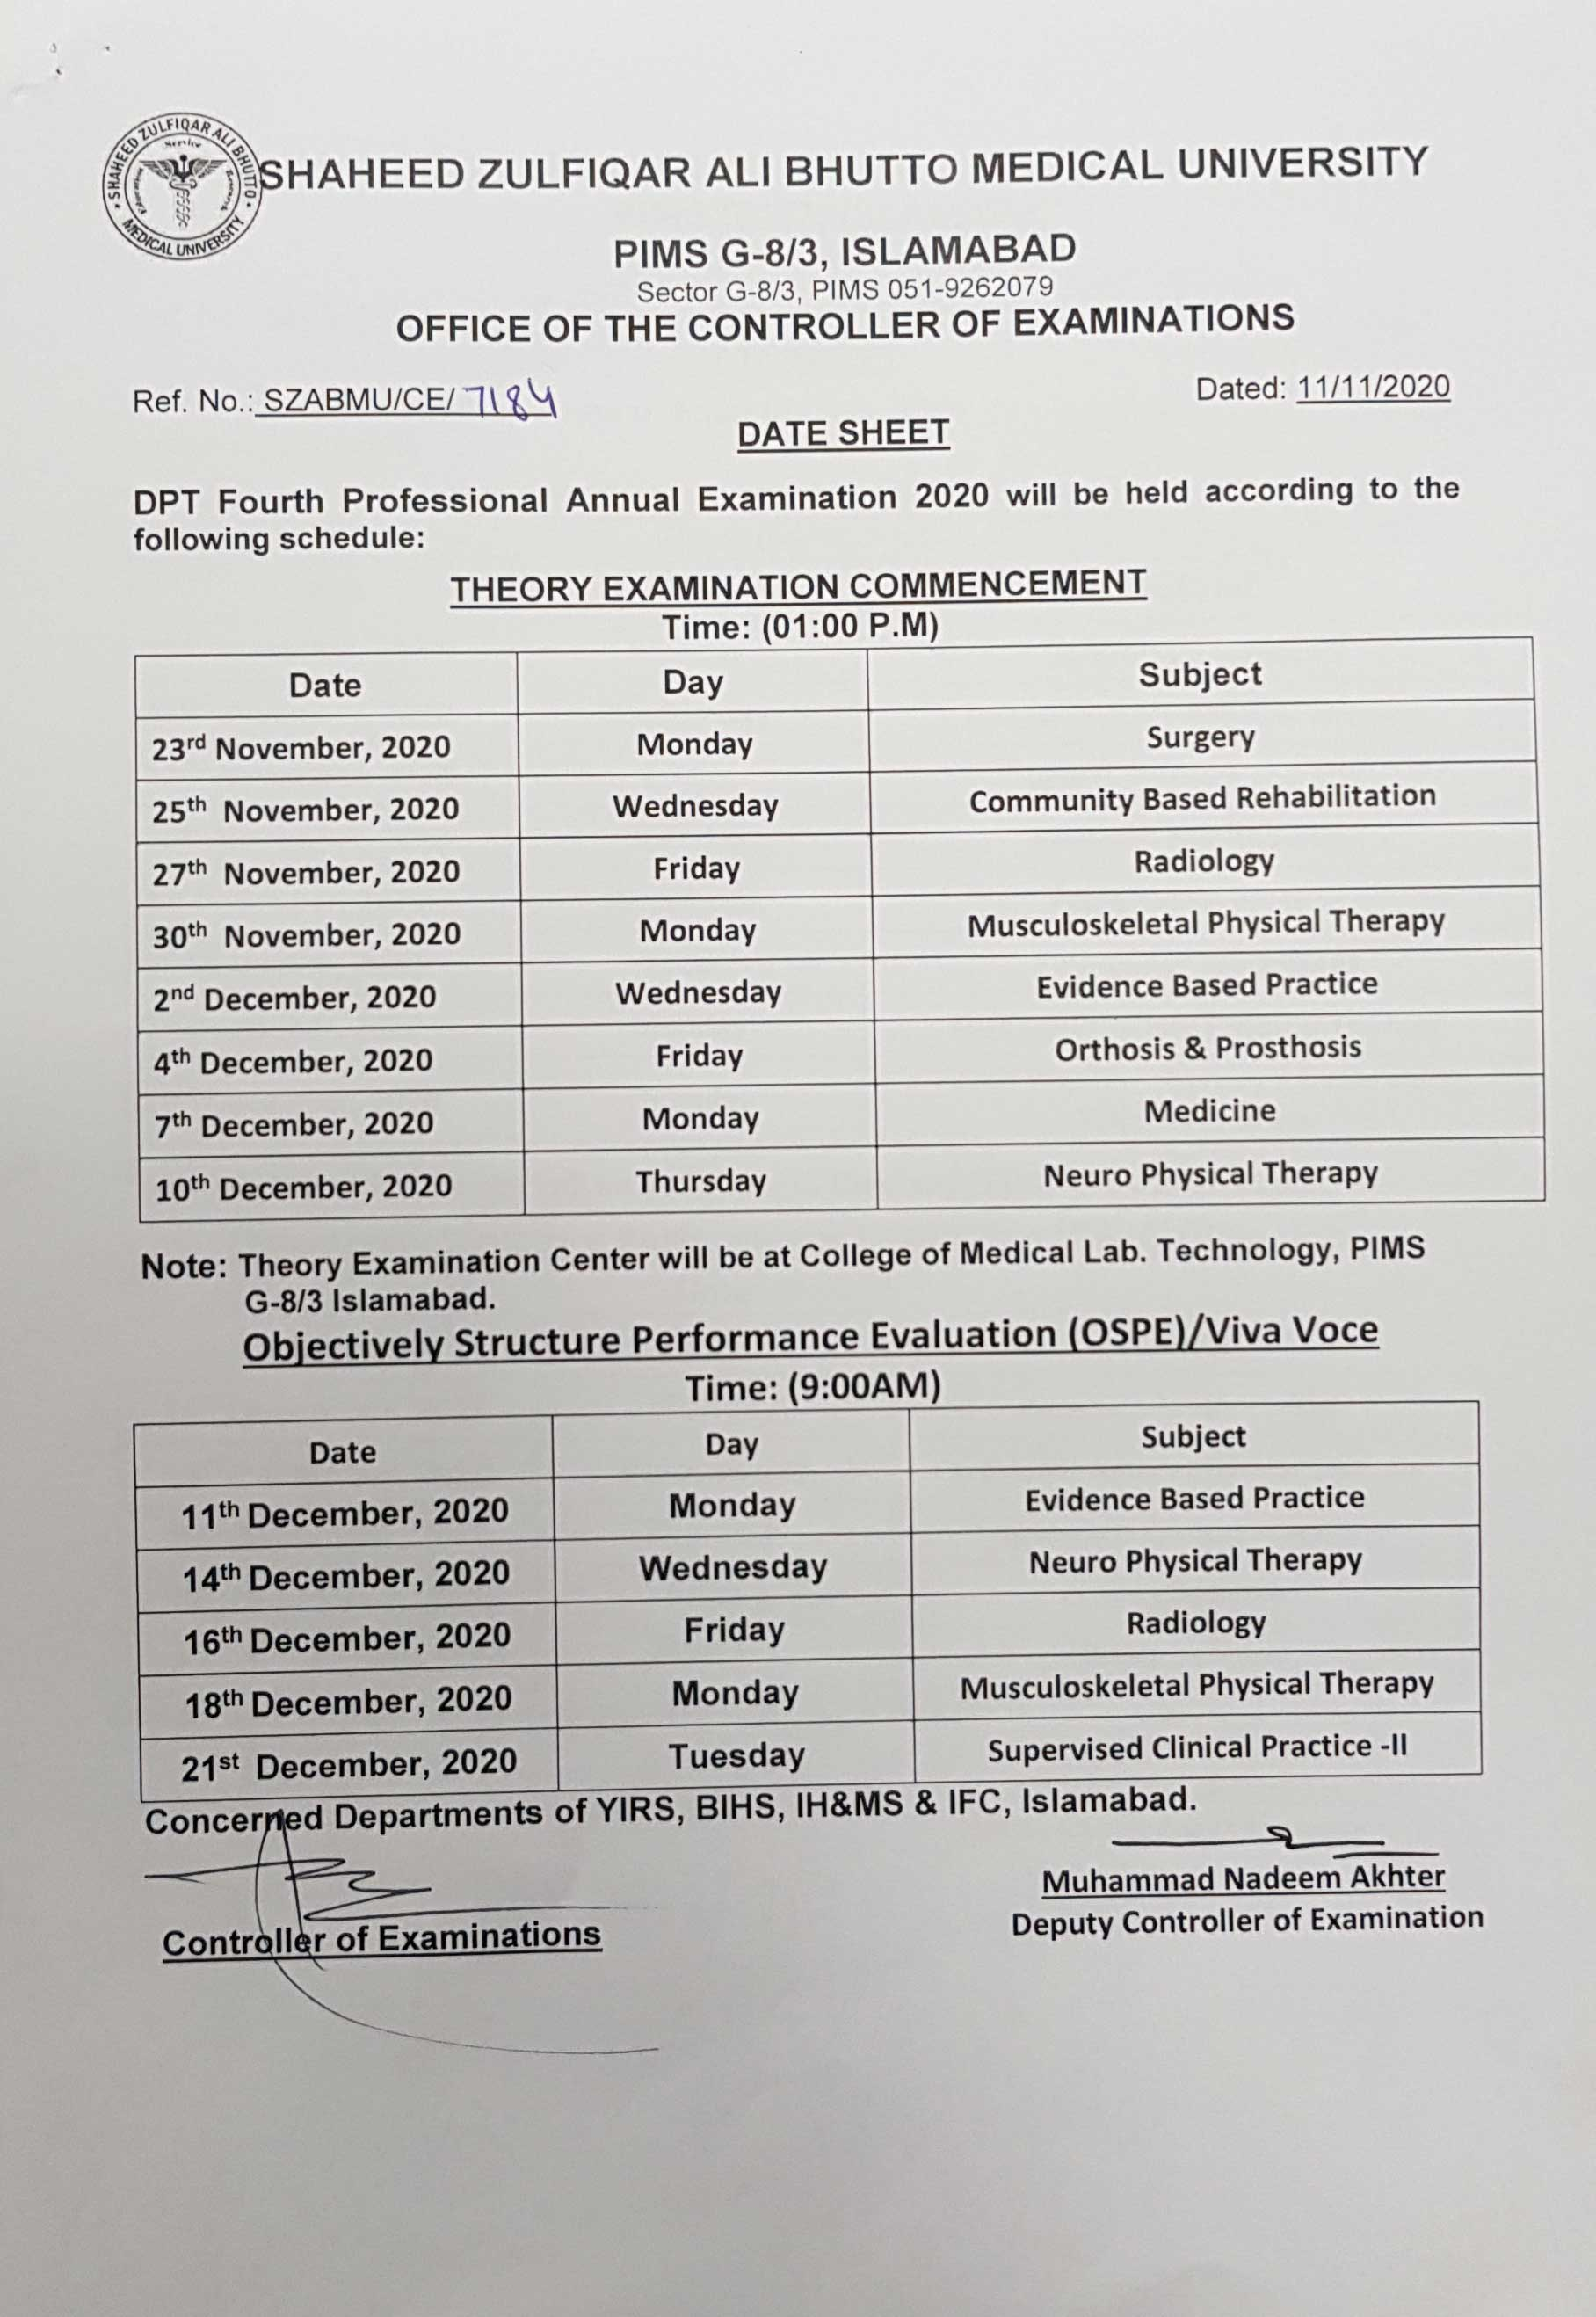 Datesheet of DPT 2nd,3rd,4th and 5th Professional Annual Exam 2020